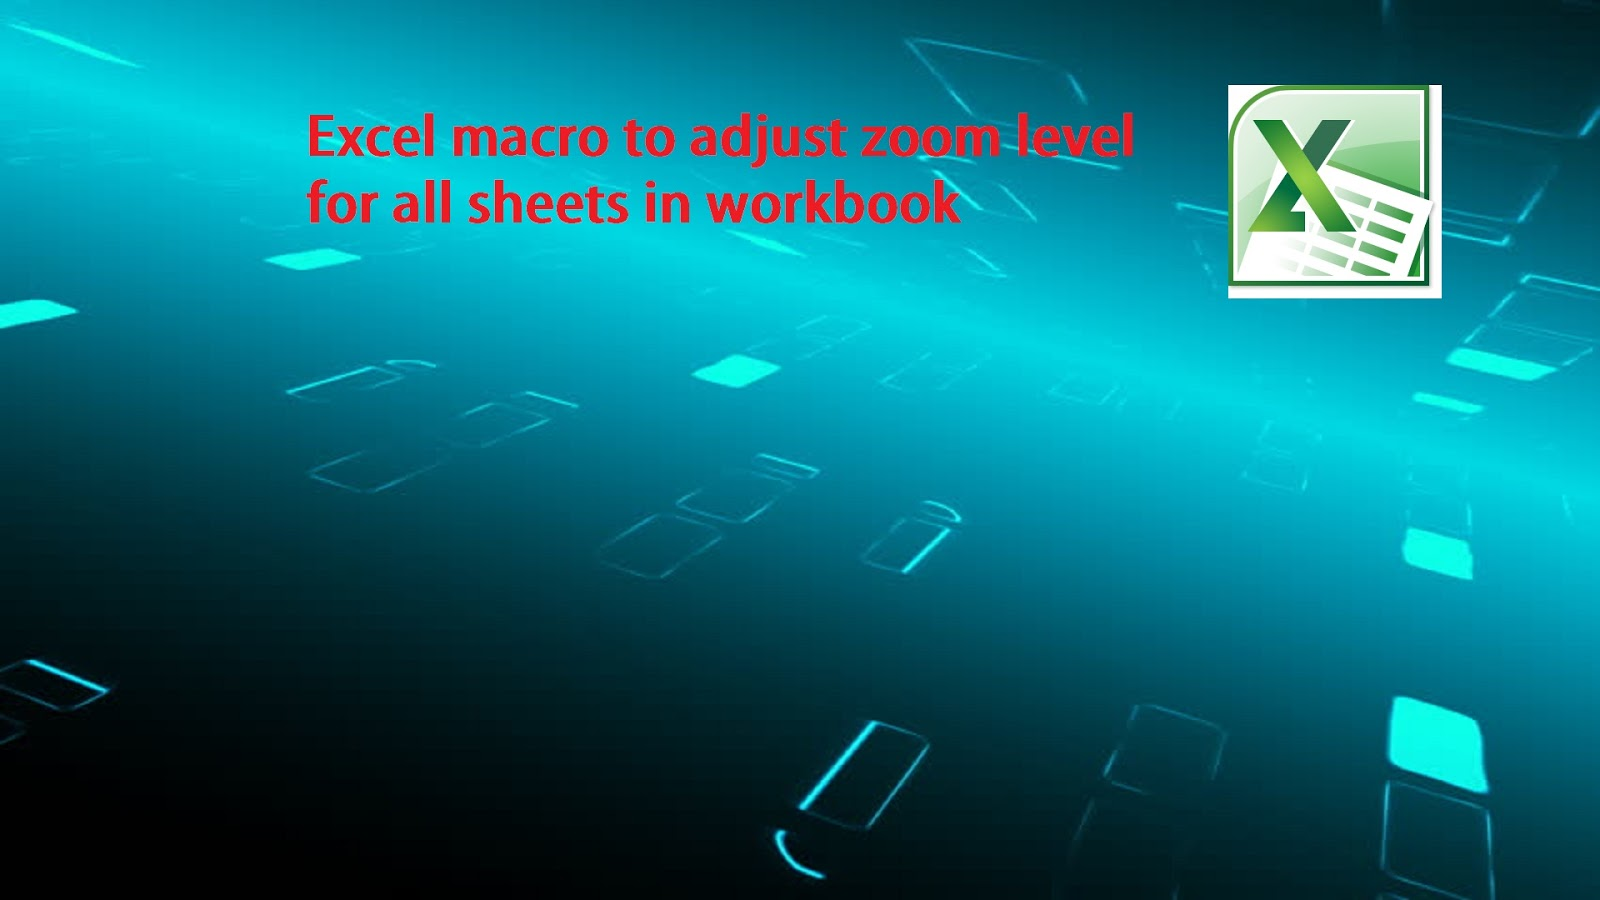 Vba Tricks And Tips Excel Macro To Set Zoom Level For All Sheets In Workbook